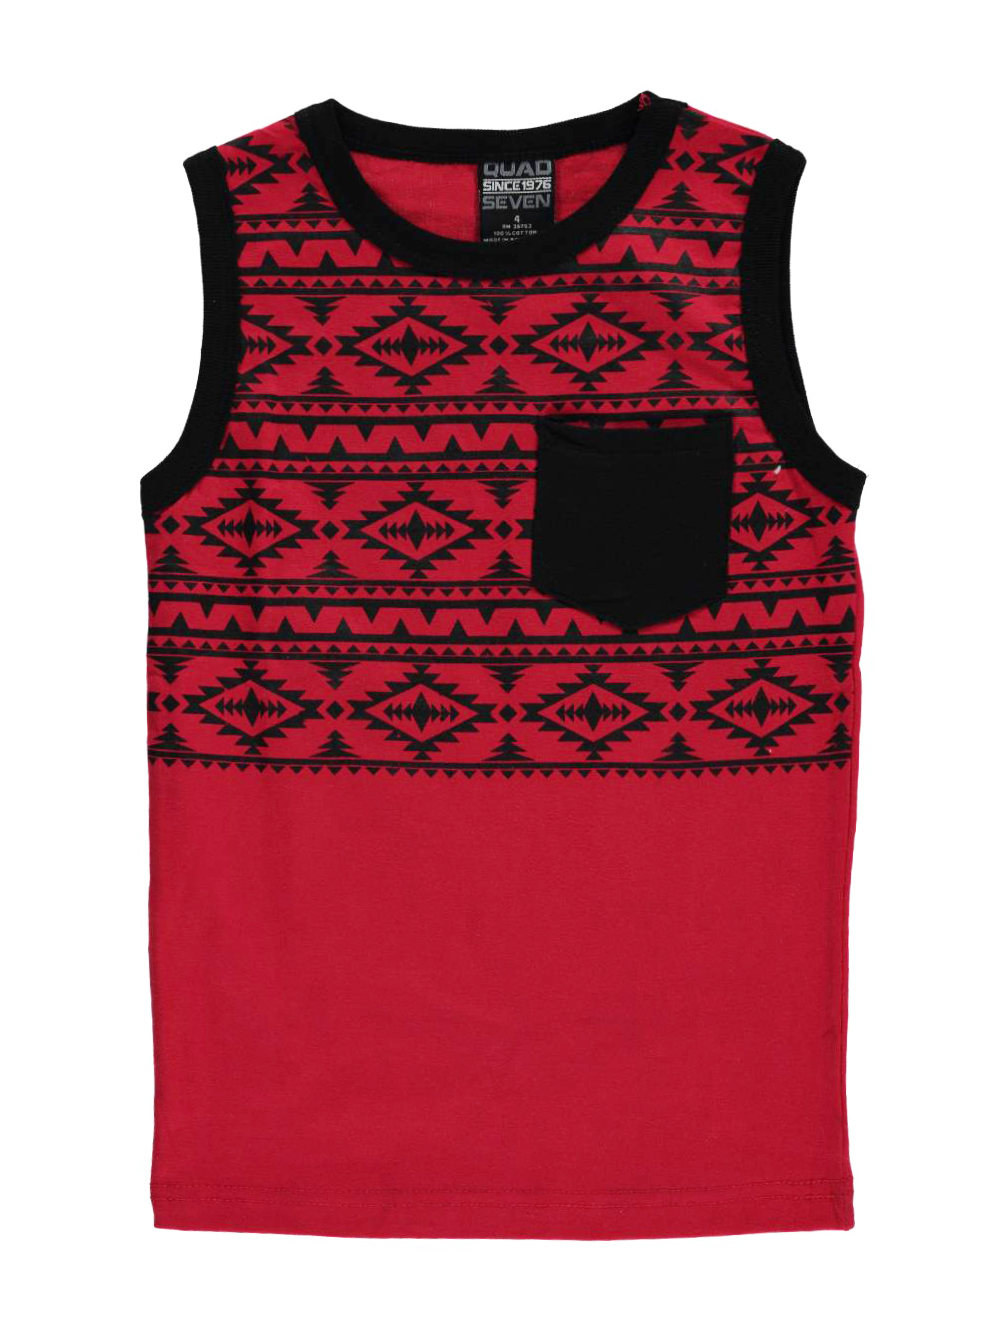 Image of Quad Seven Little Boys Toddler Tribal Upper Sleeveless TShirt Sizes 2T  4T